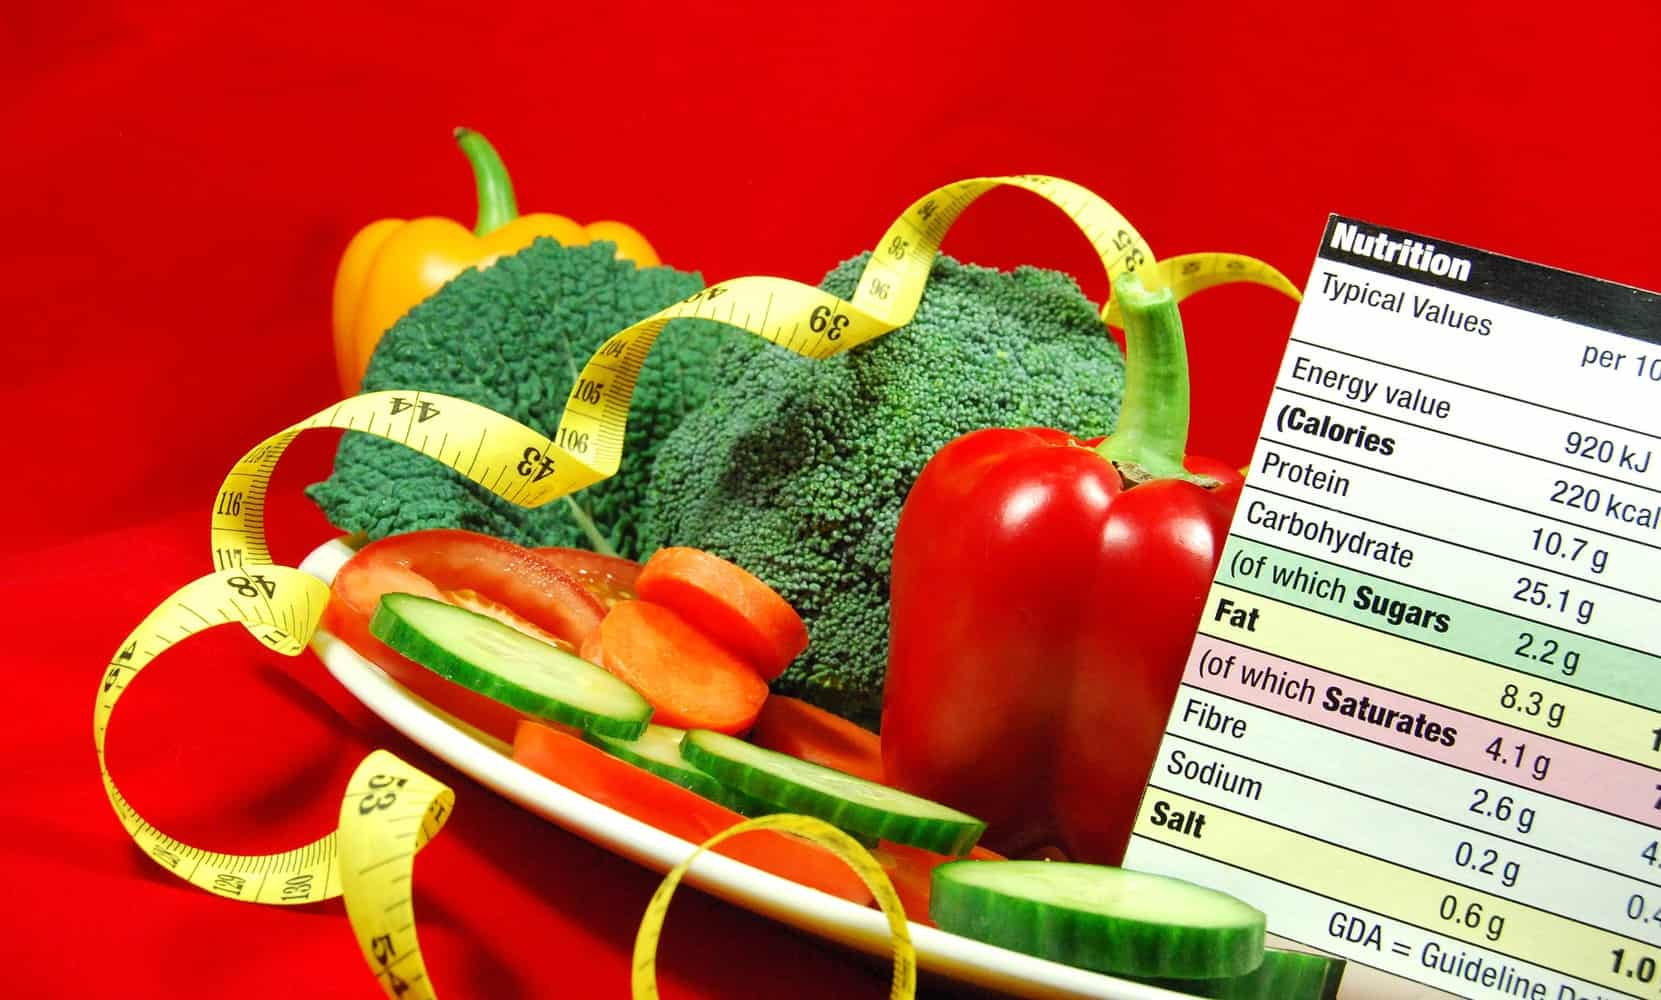 Vegetables next to a nutrient chart and measuring tape.